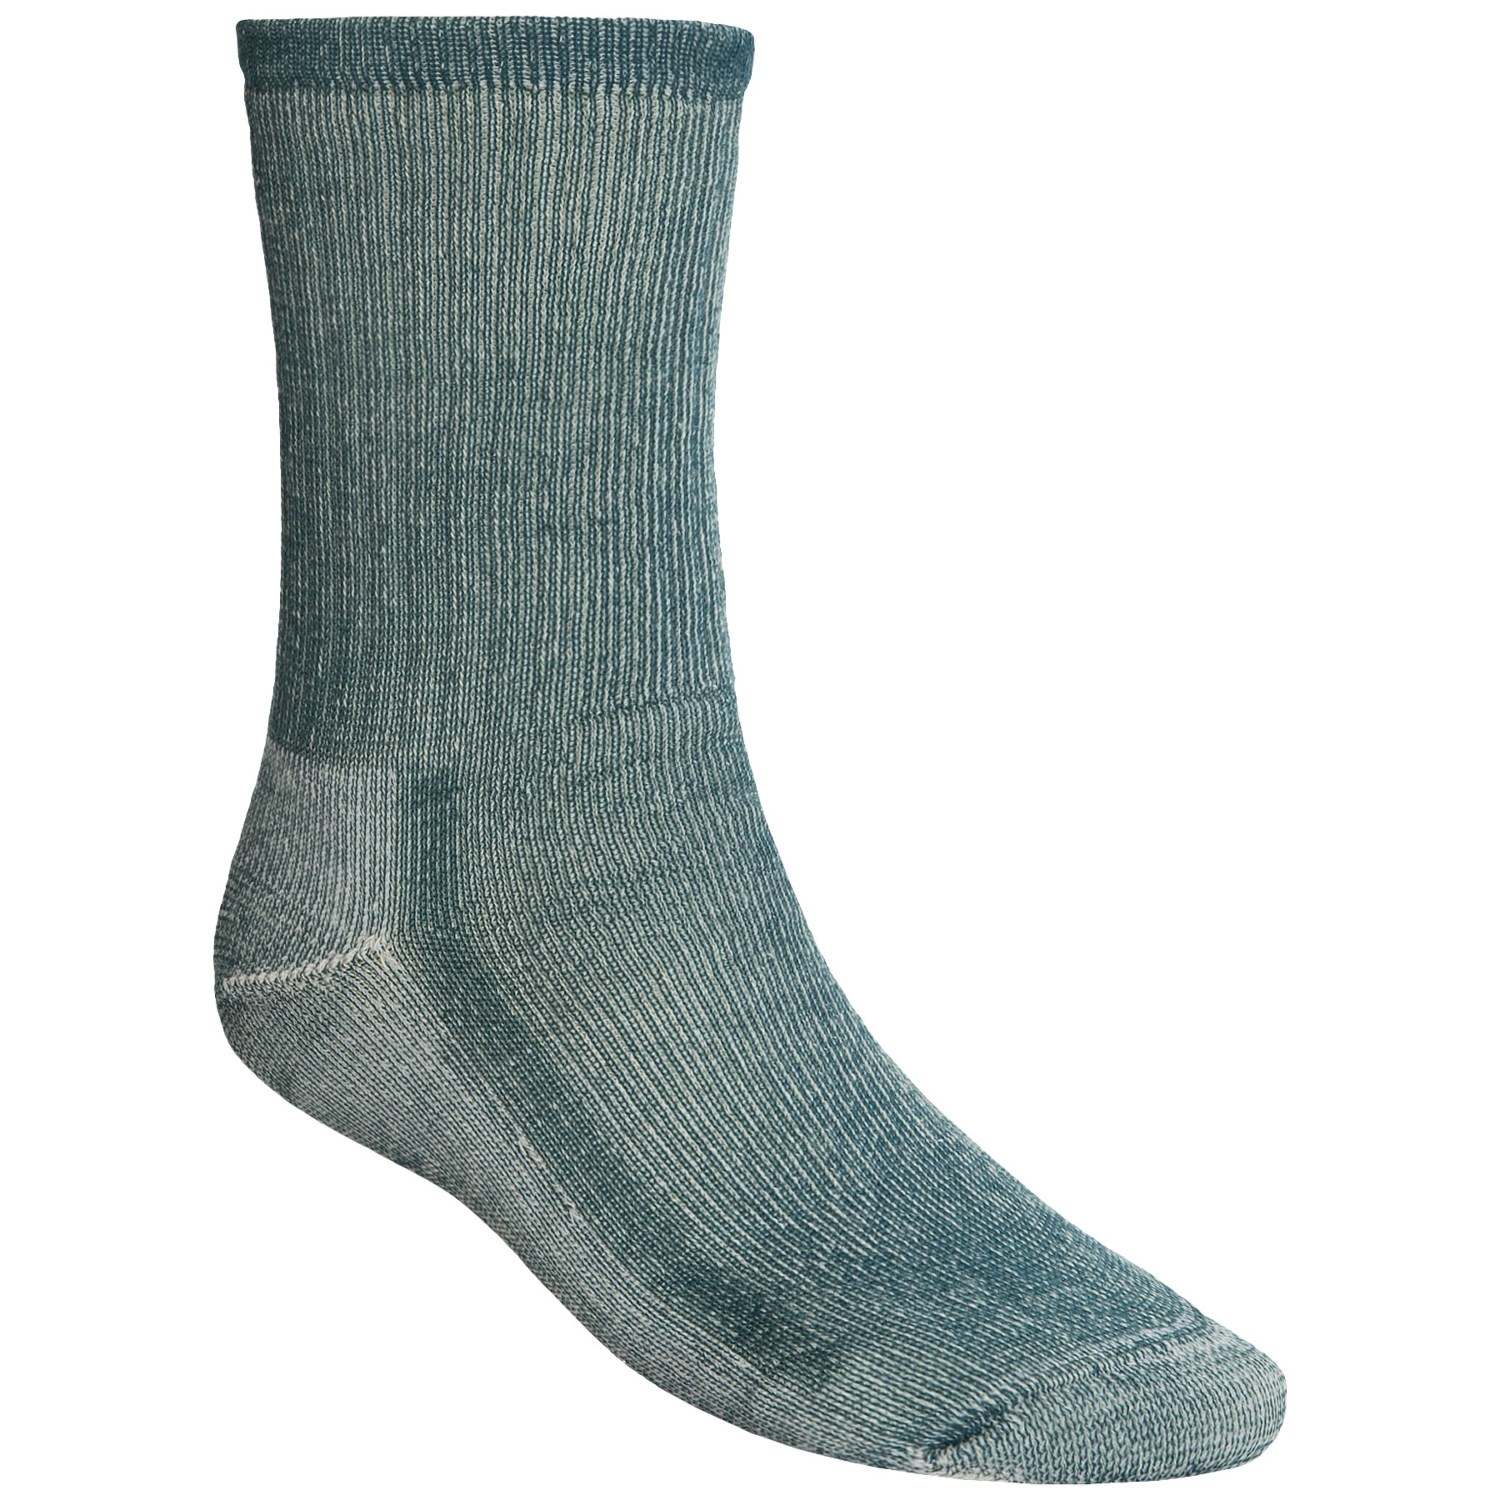 Bombas socks are the most comfortable socks in the history of feet; engineered comfort with better yarns and smarter design for all walks of life. Merino Wool. Men. All Men's. Sock Height. No Show Ankle Shop Women Shop Men Shop Kids. Shopping Cart. You are 50 away from free shipping in .